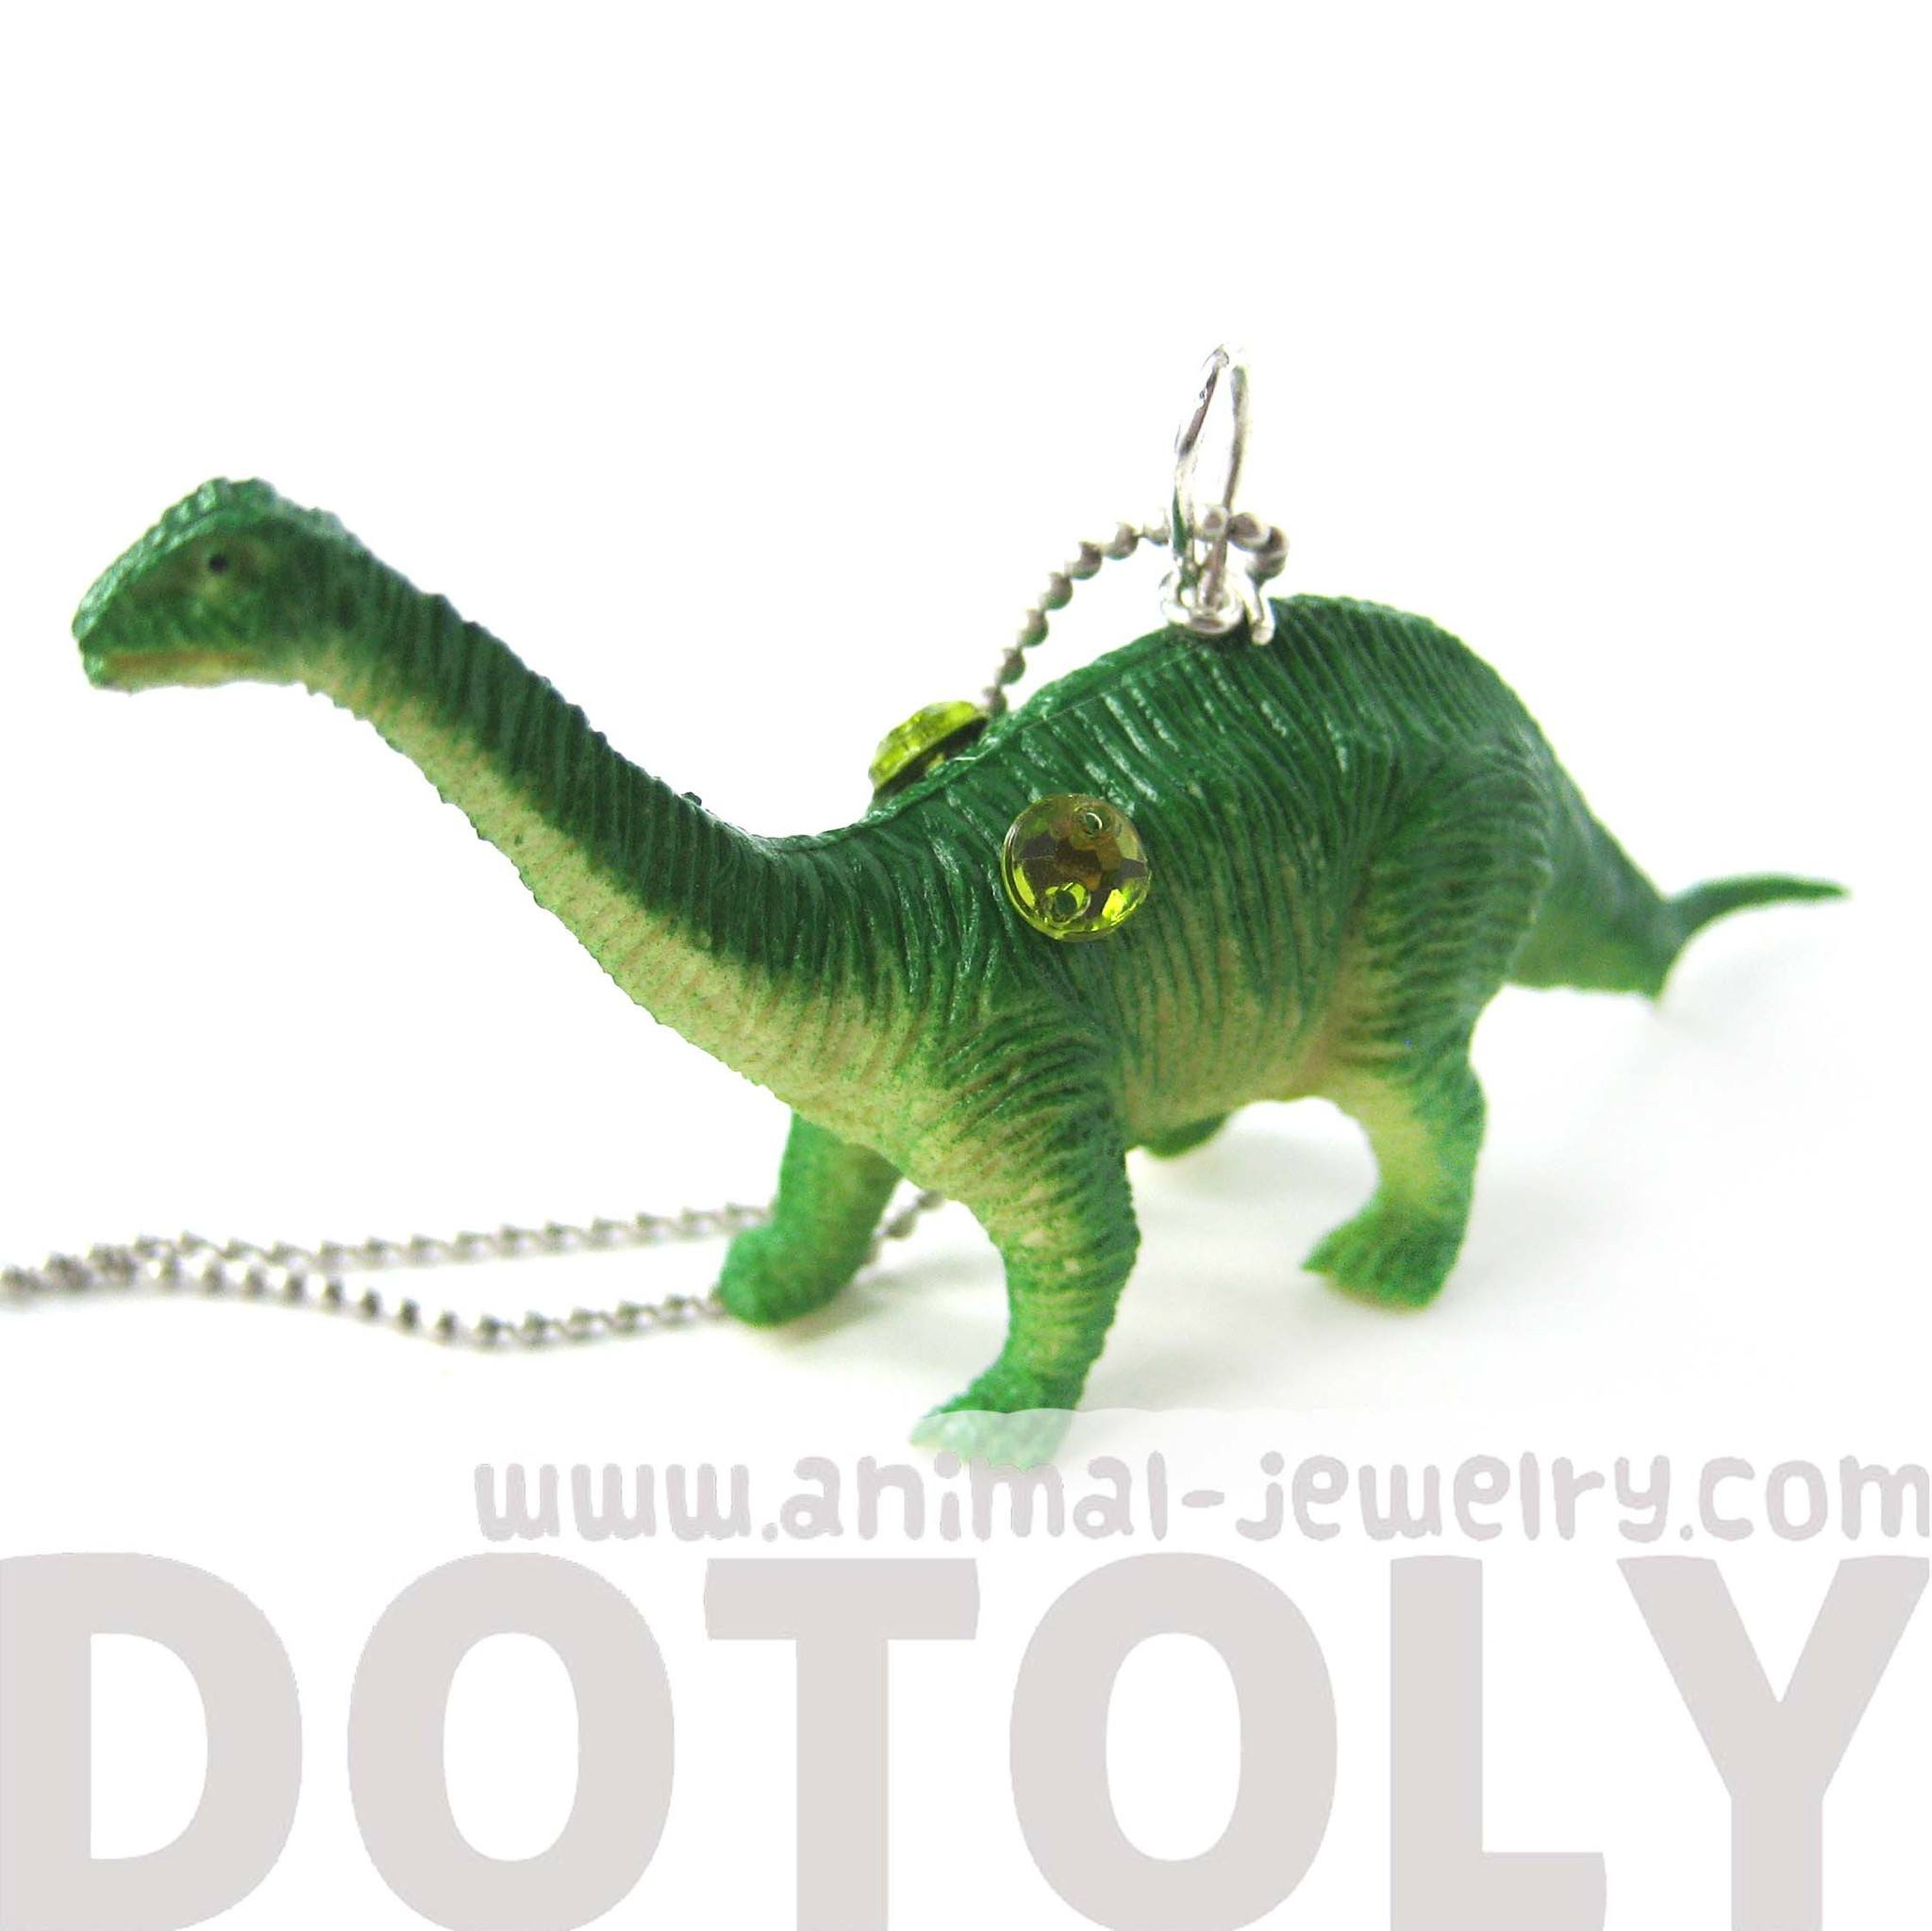 brontosaurus-sauropoda-long-neck-dinosaur-pendant-necklace-in-green-animal-jewelry